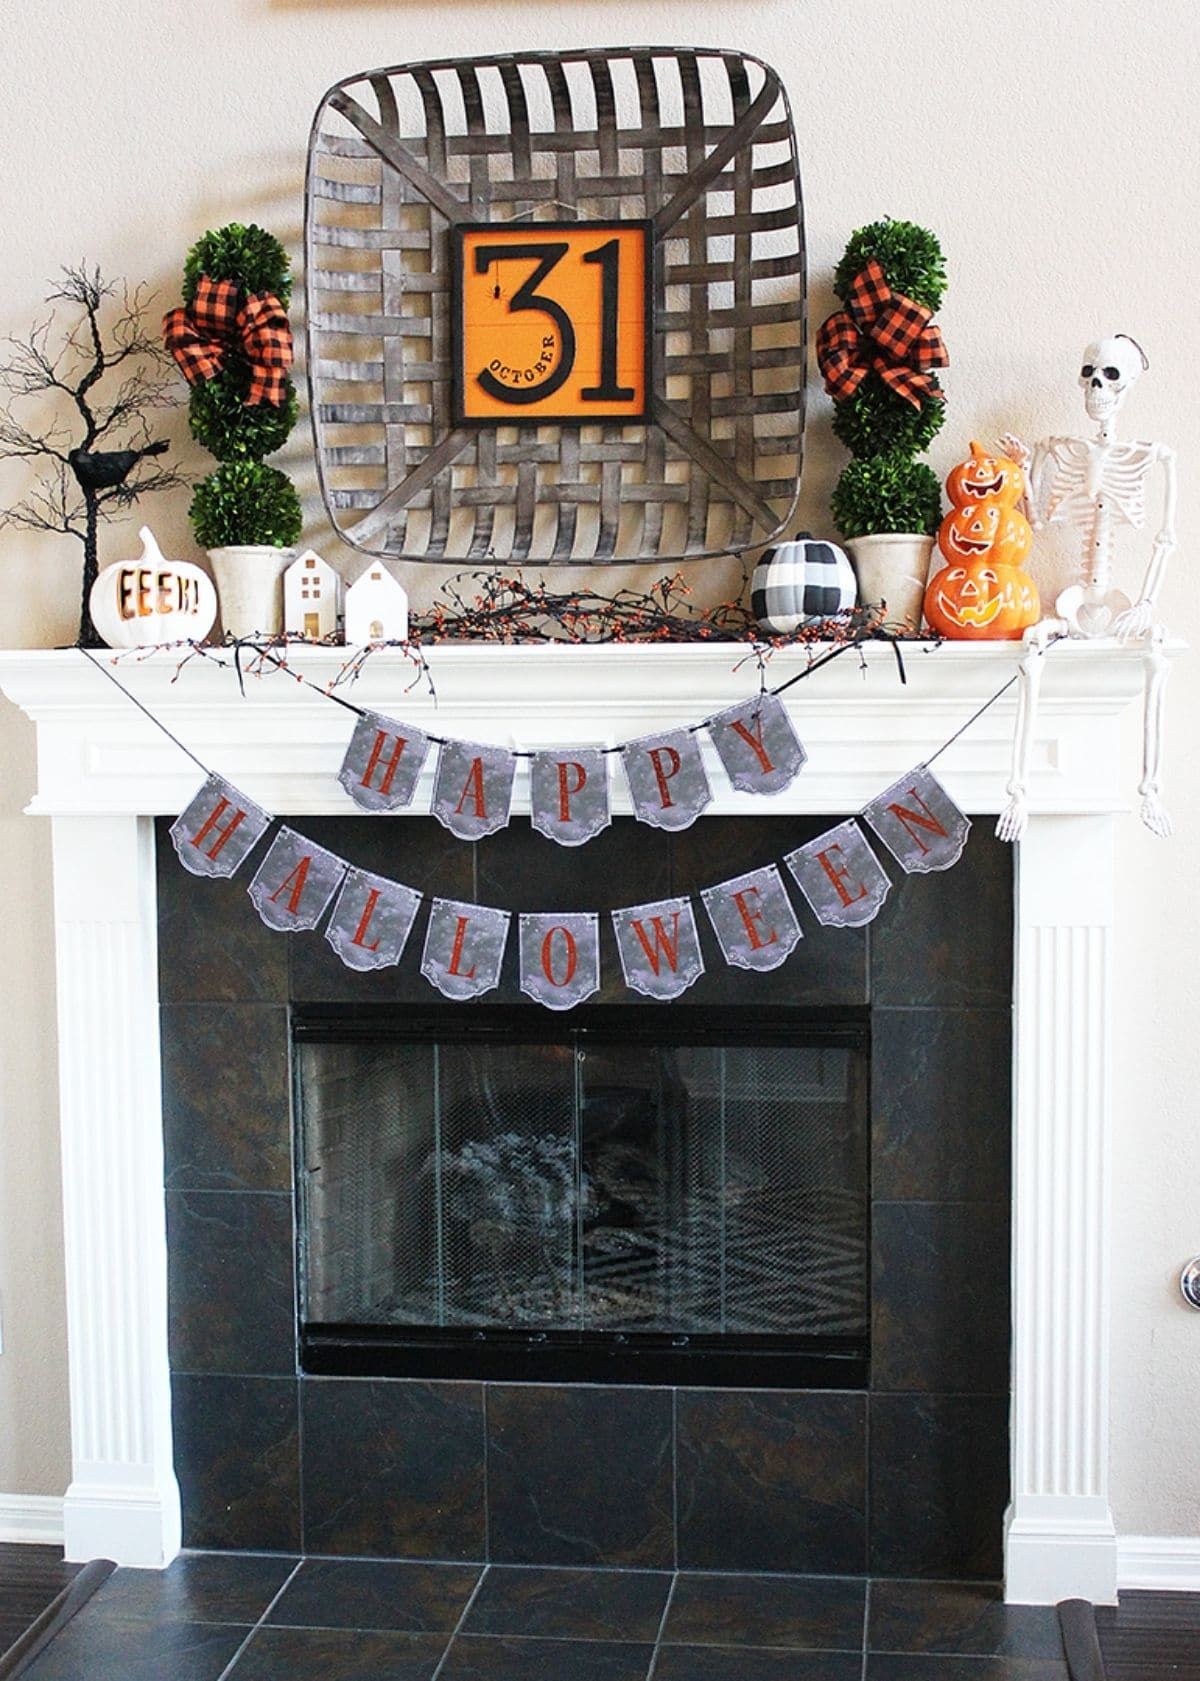 mantel with a big 31 and banner that says happy halloween